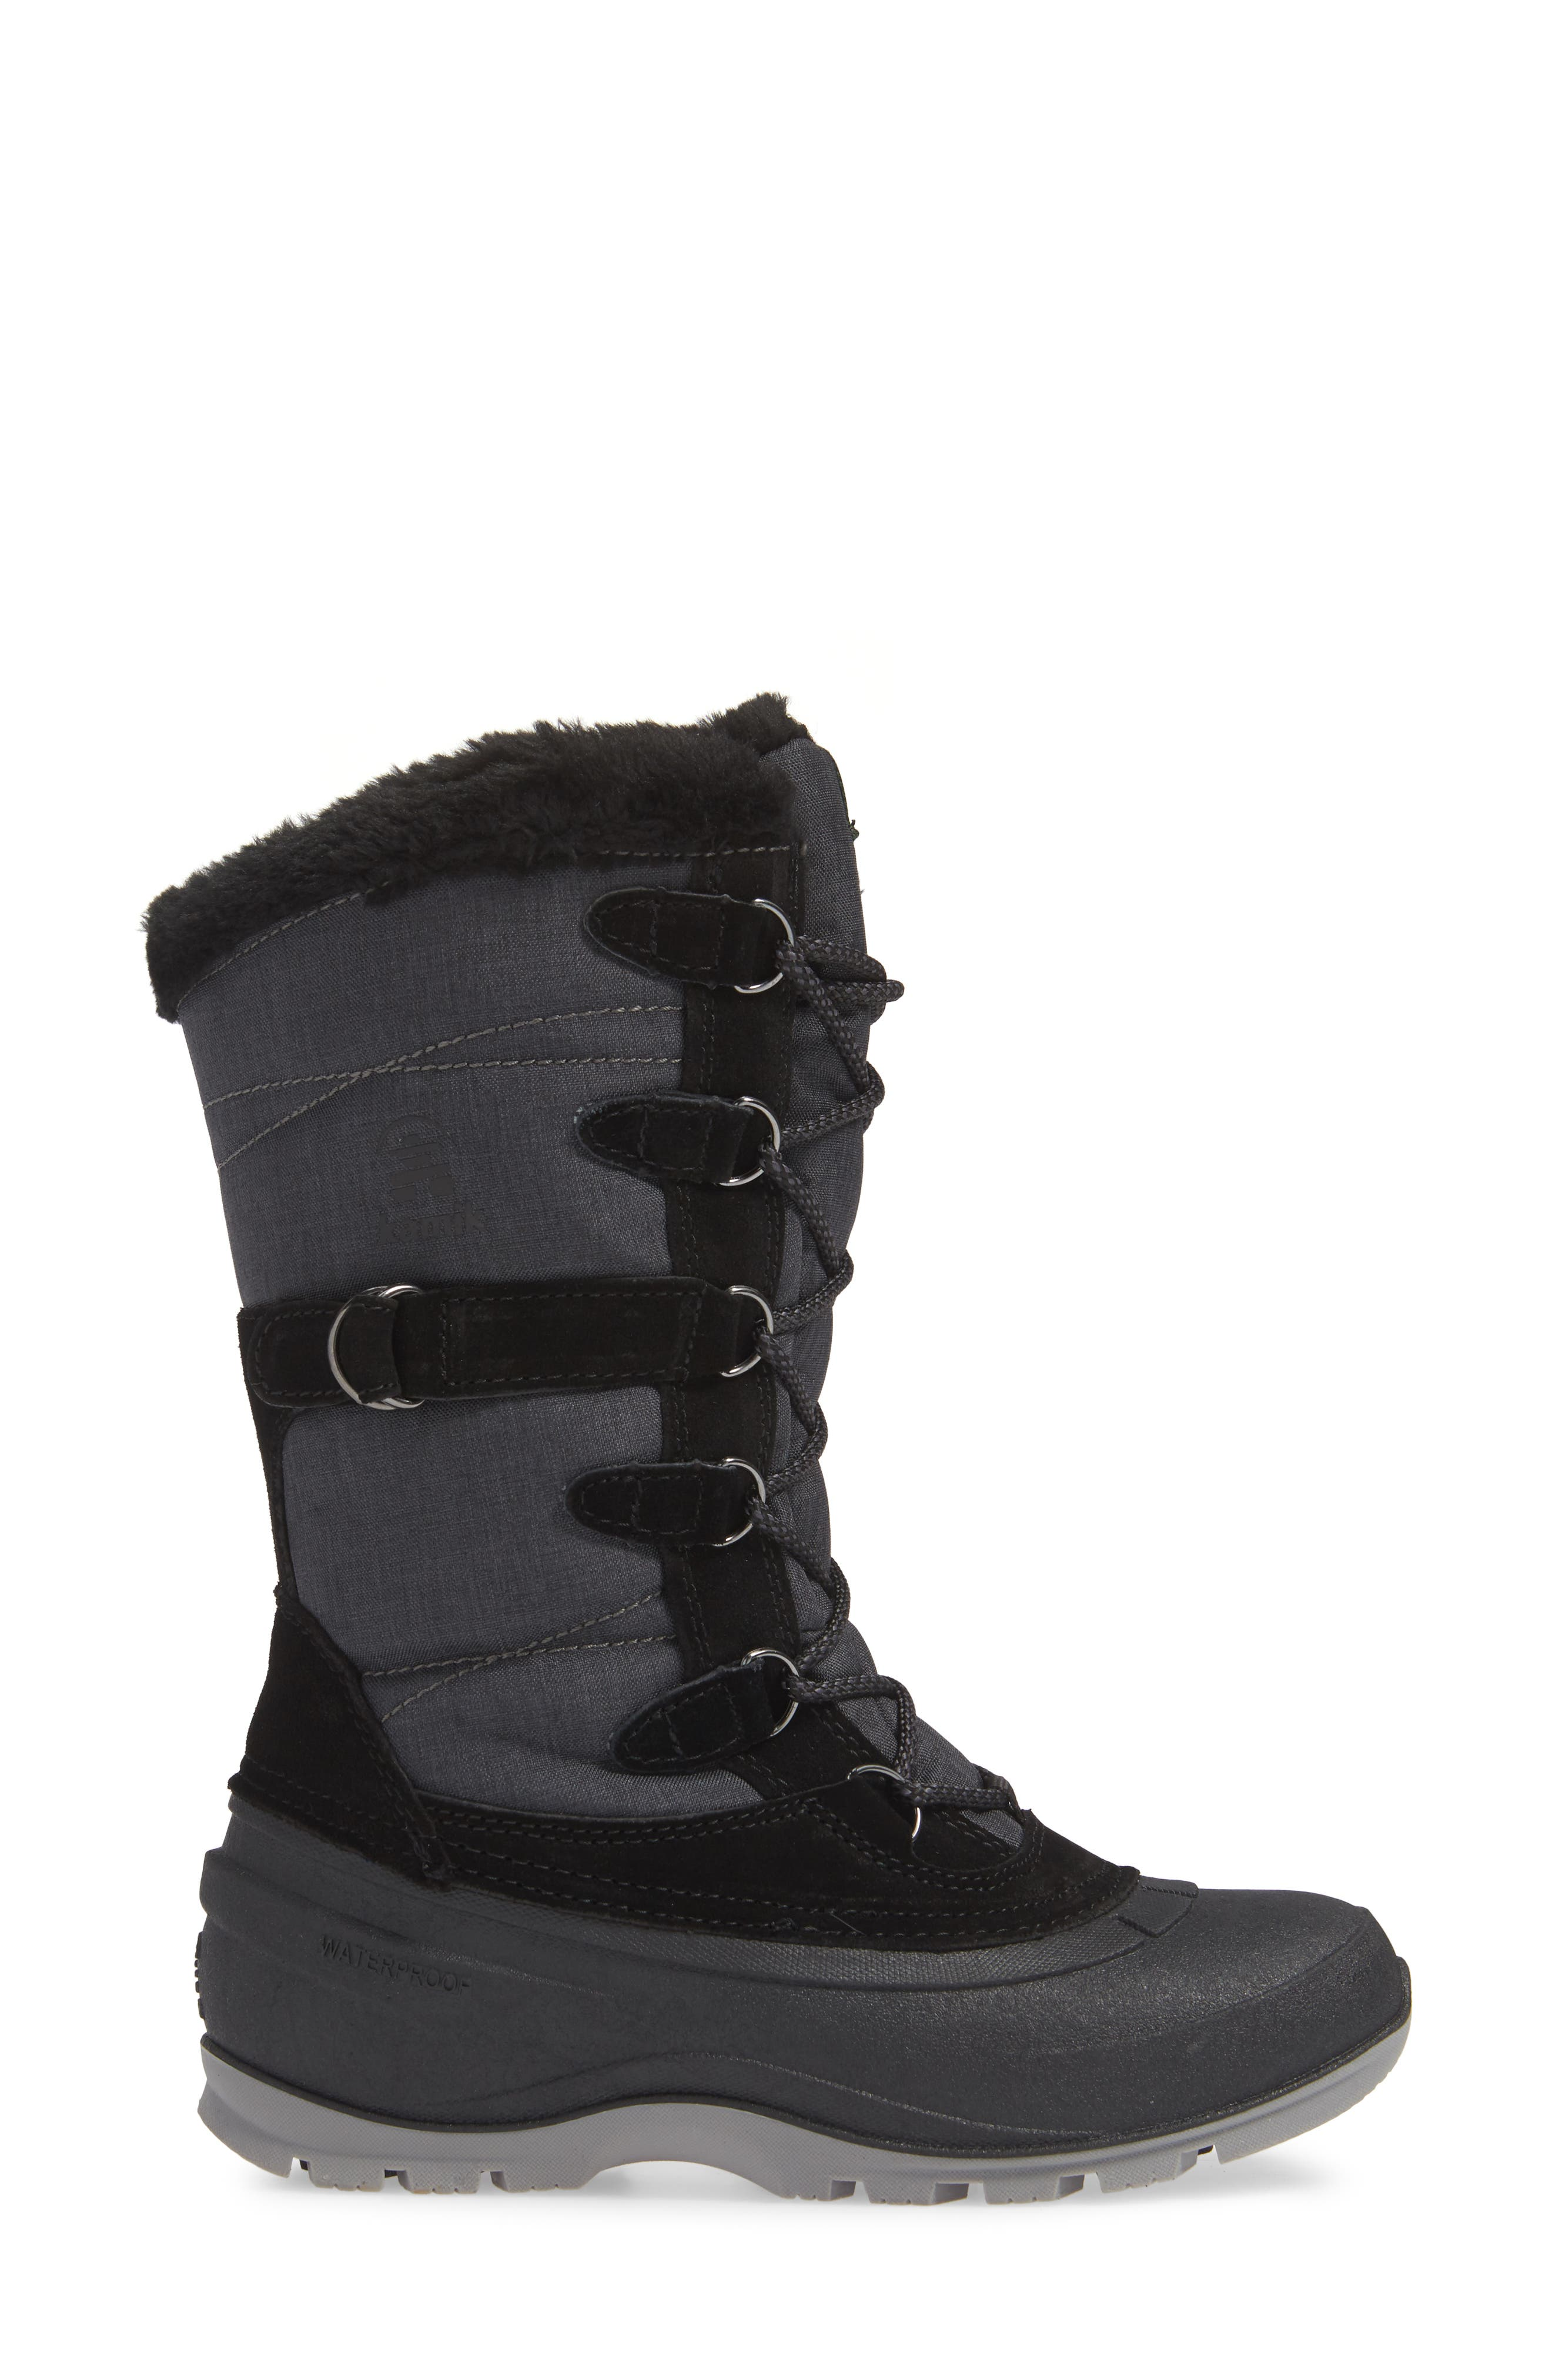 KAMIK, Snovalley2 Waterproof Thinsulate<sup>®</sup>-Insulated Snow Boot, Alternate thumbnail 3, color, 001